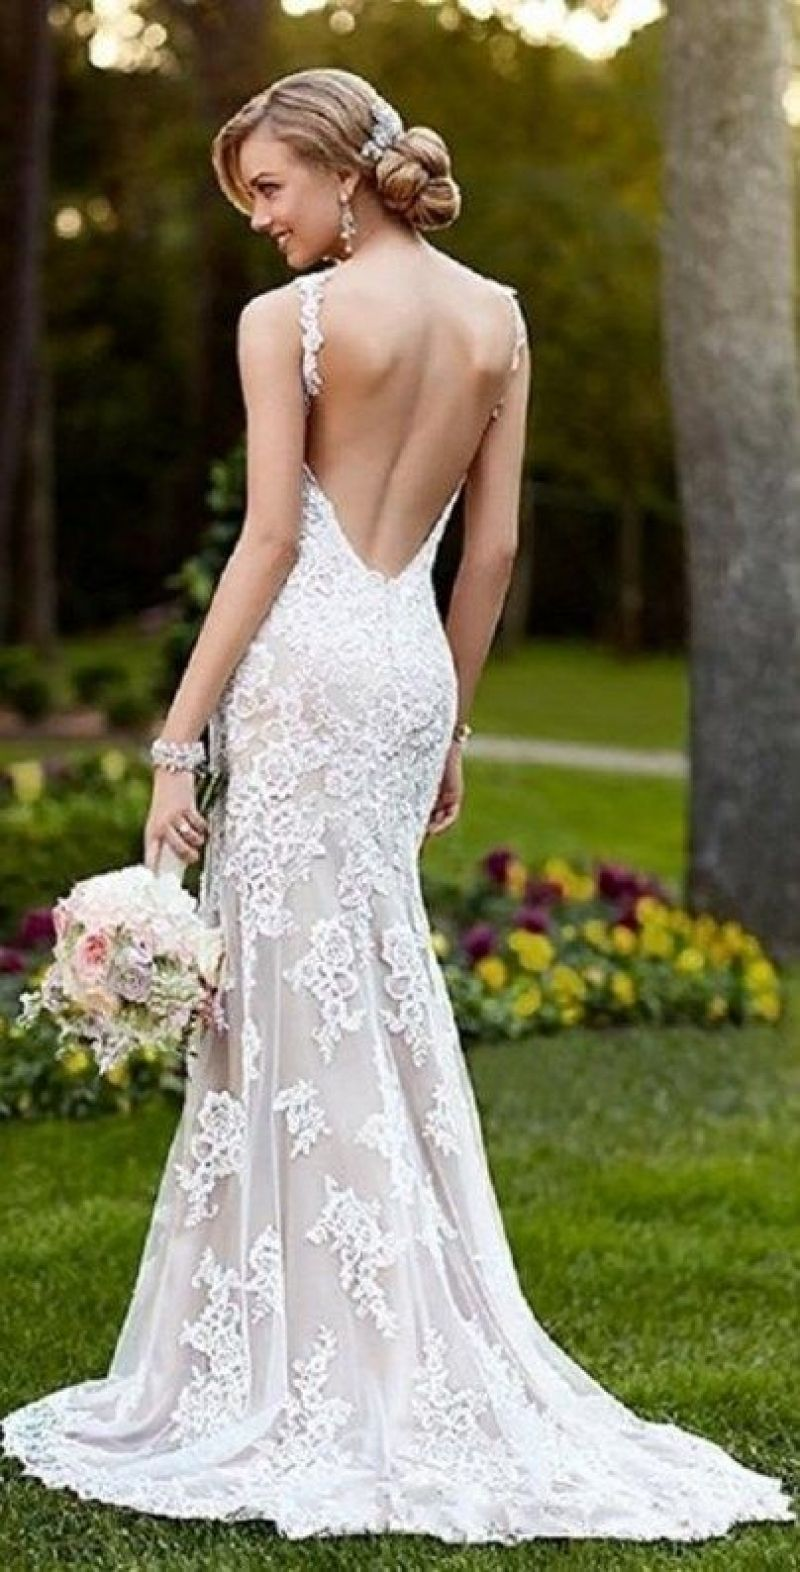 Great wedding dresses for garden weddings garden wedding wedding